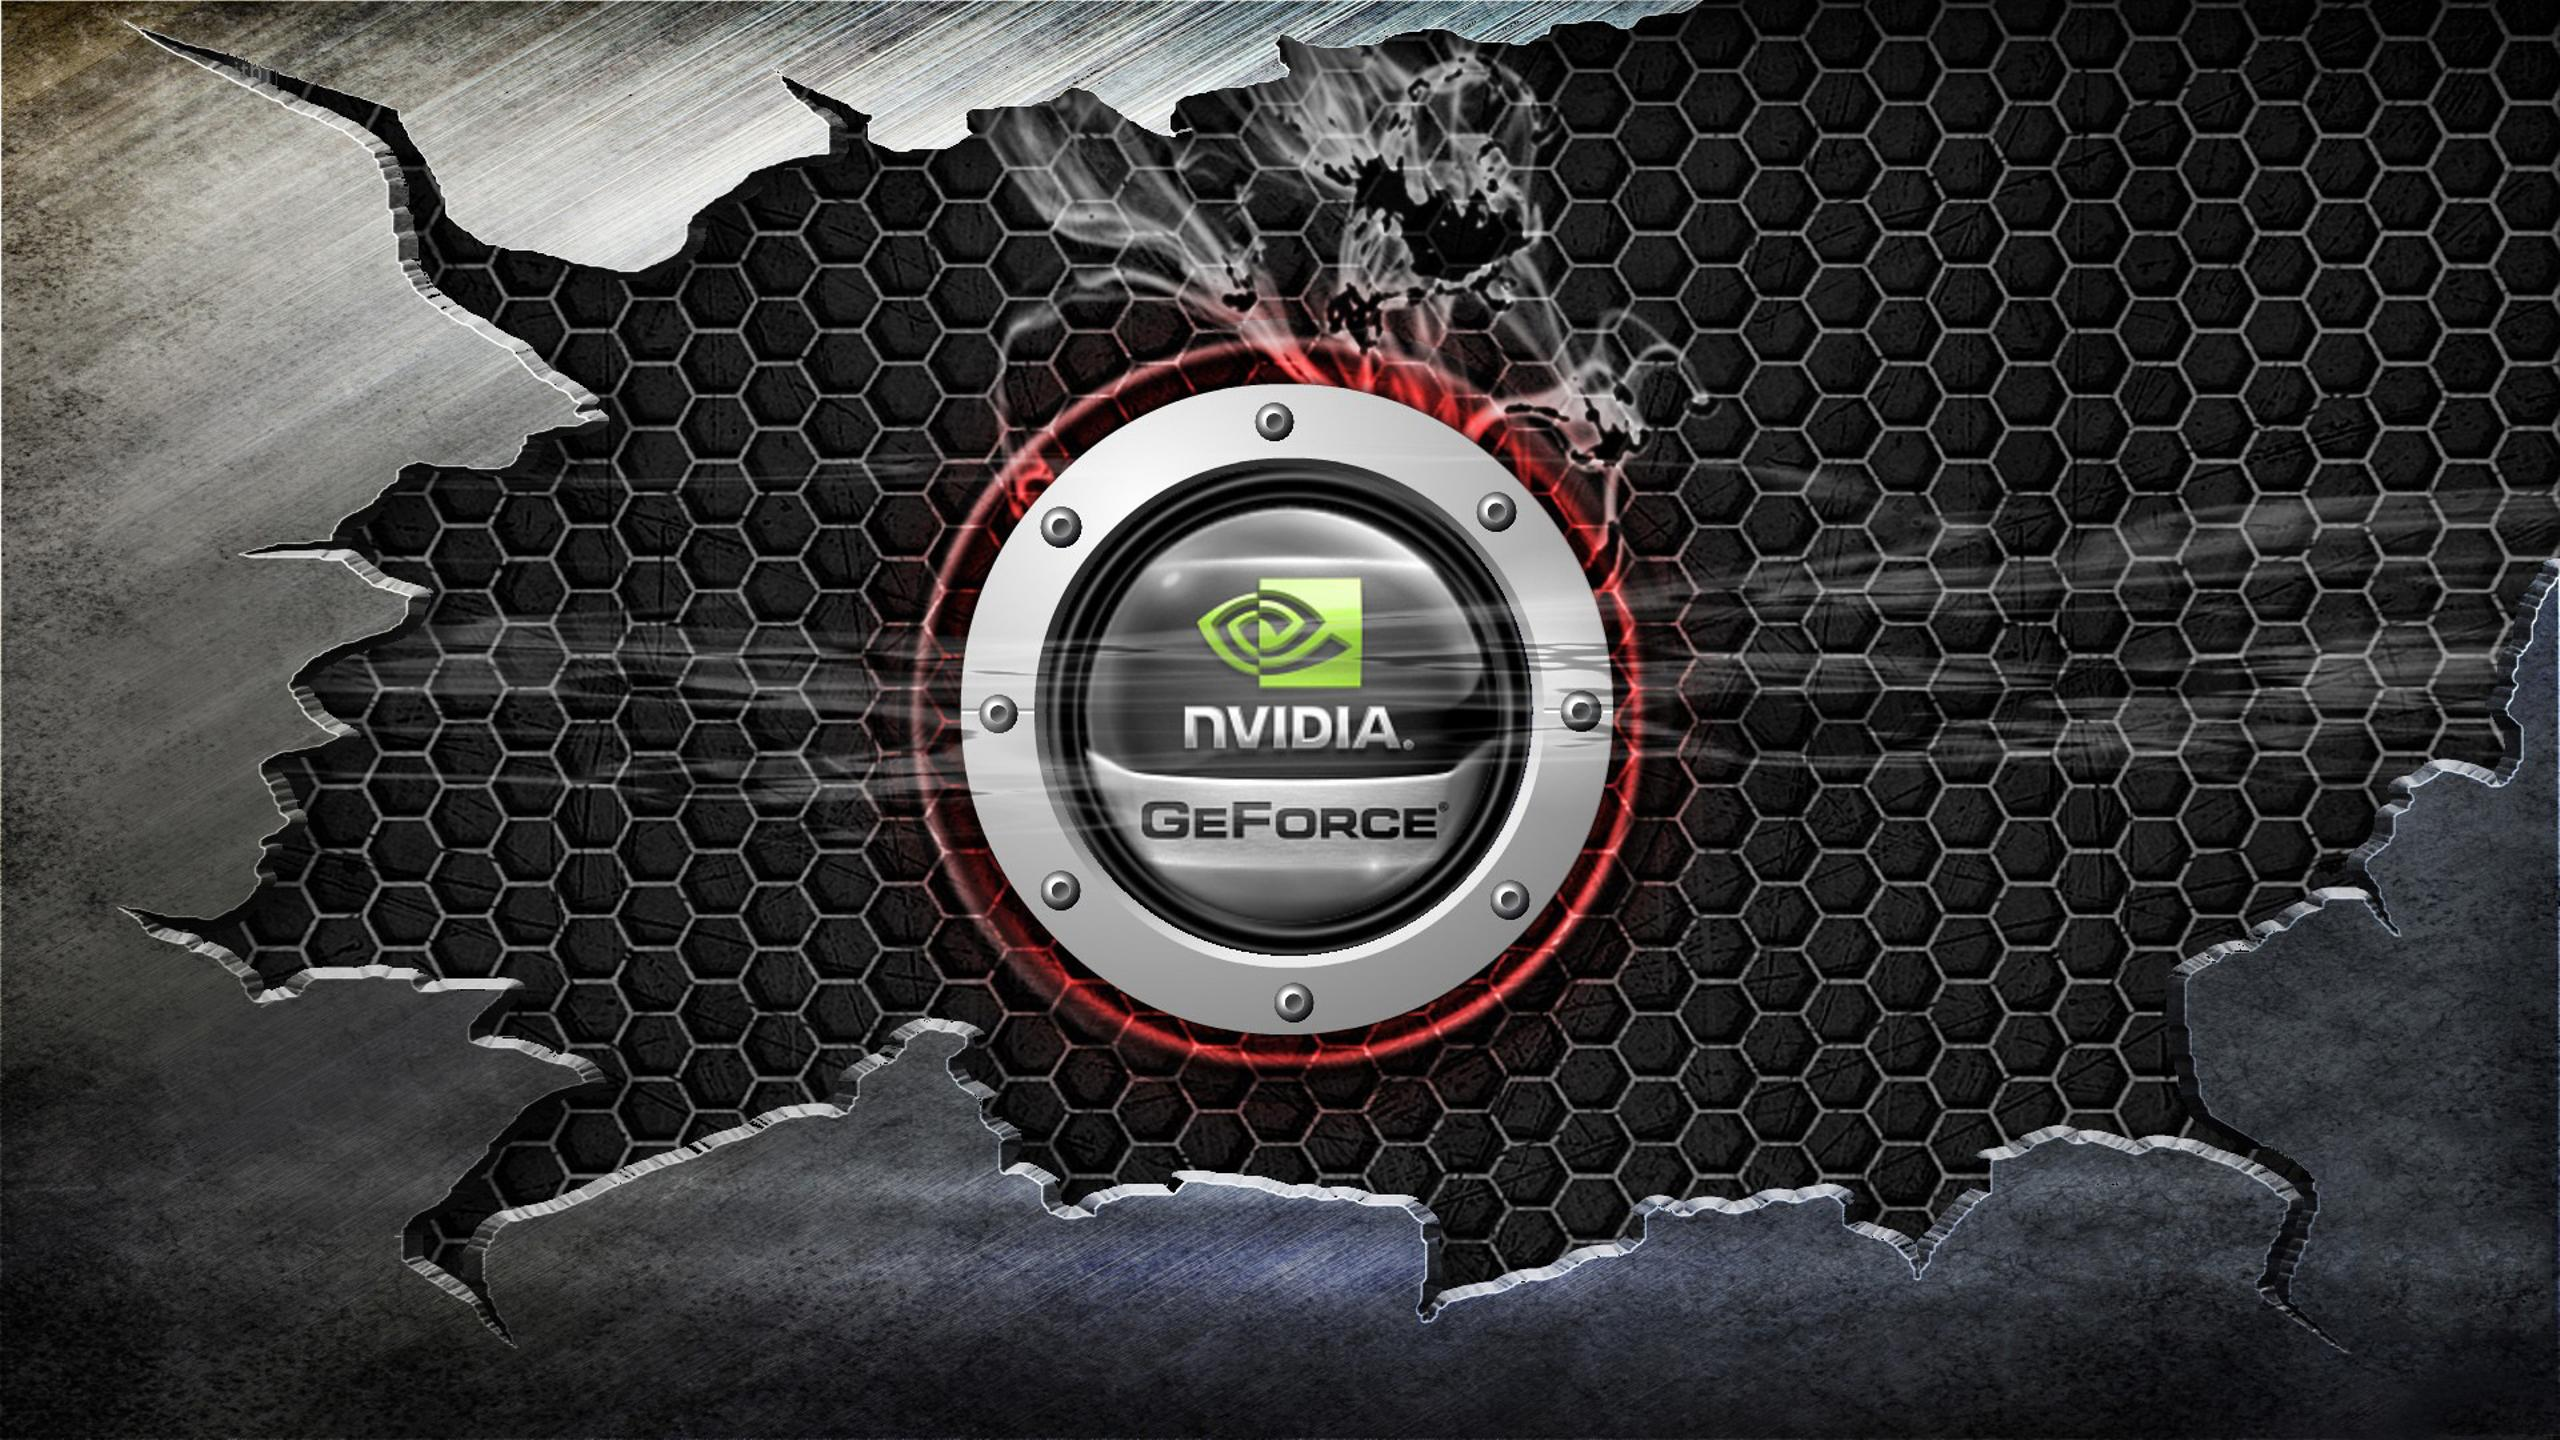 Nvidia Geforce Logo Hd Wallpaper Wallpaper Download